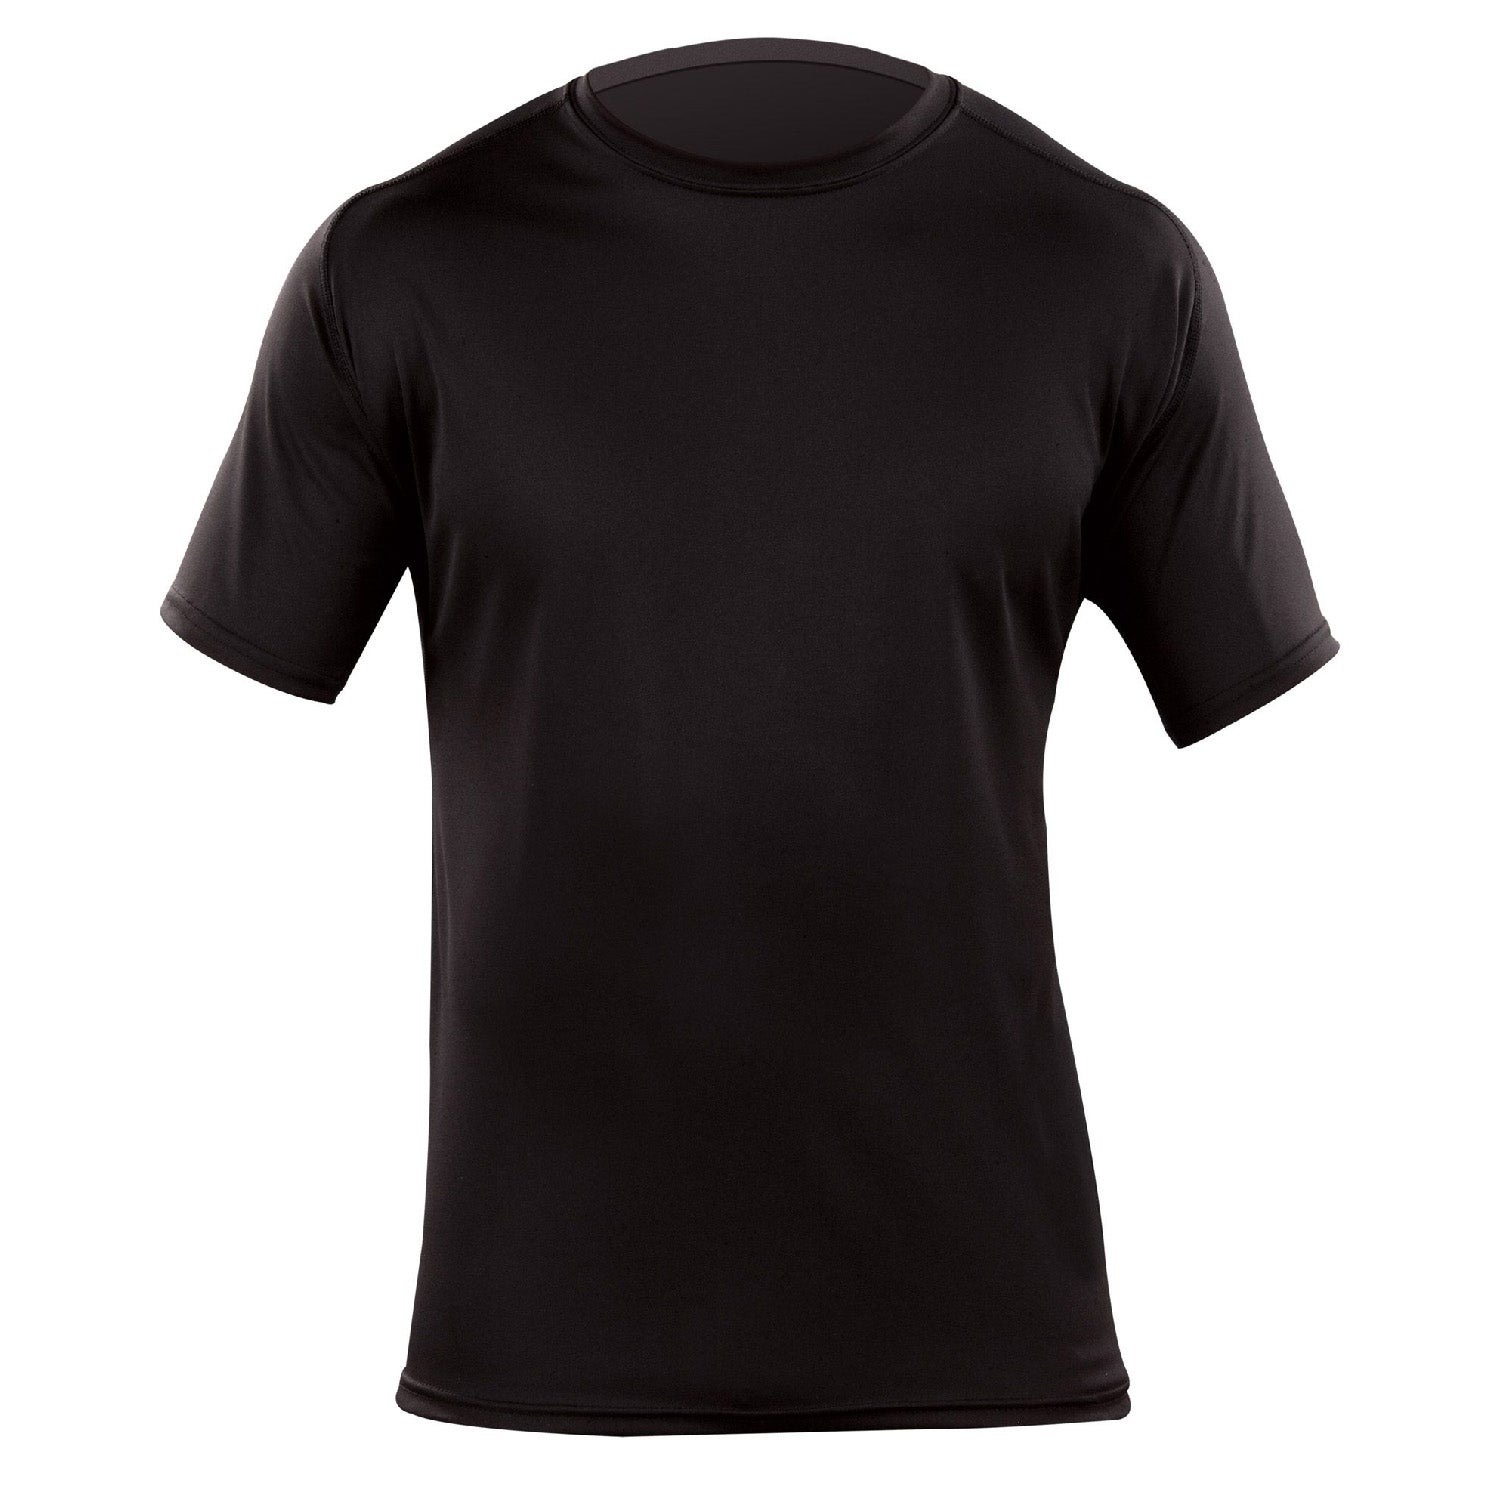 5.11 Tactical Loose Crew Base Layer